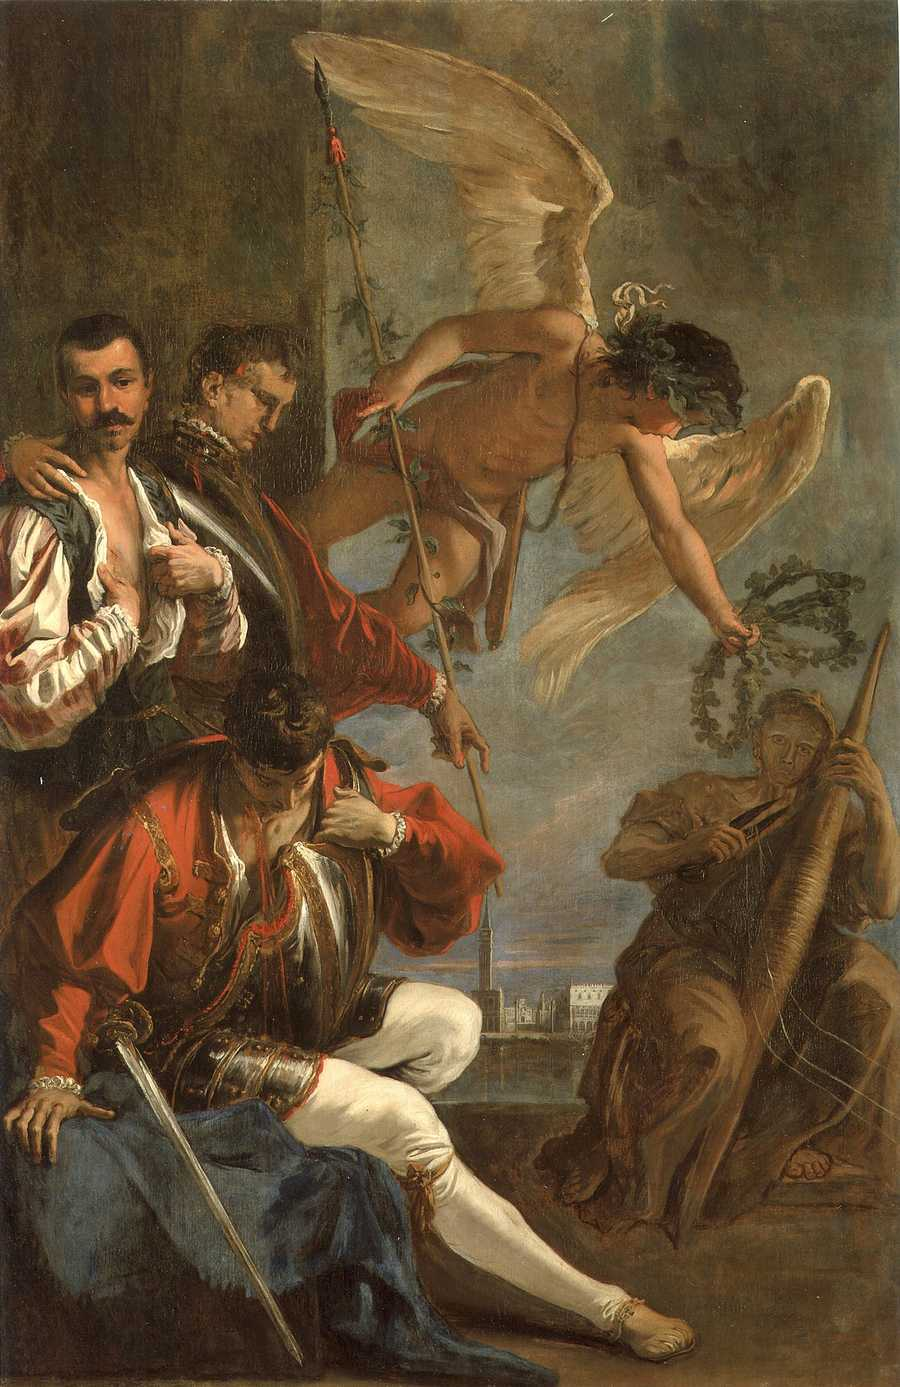 """The circa 1706 painting by Sebastiano Ricci, """"Anteros Pleads with Atropos,"""" displayed in the dining room of The Elms mansion in Newport"""